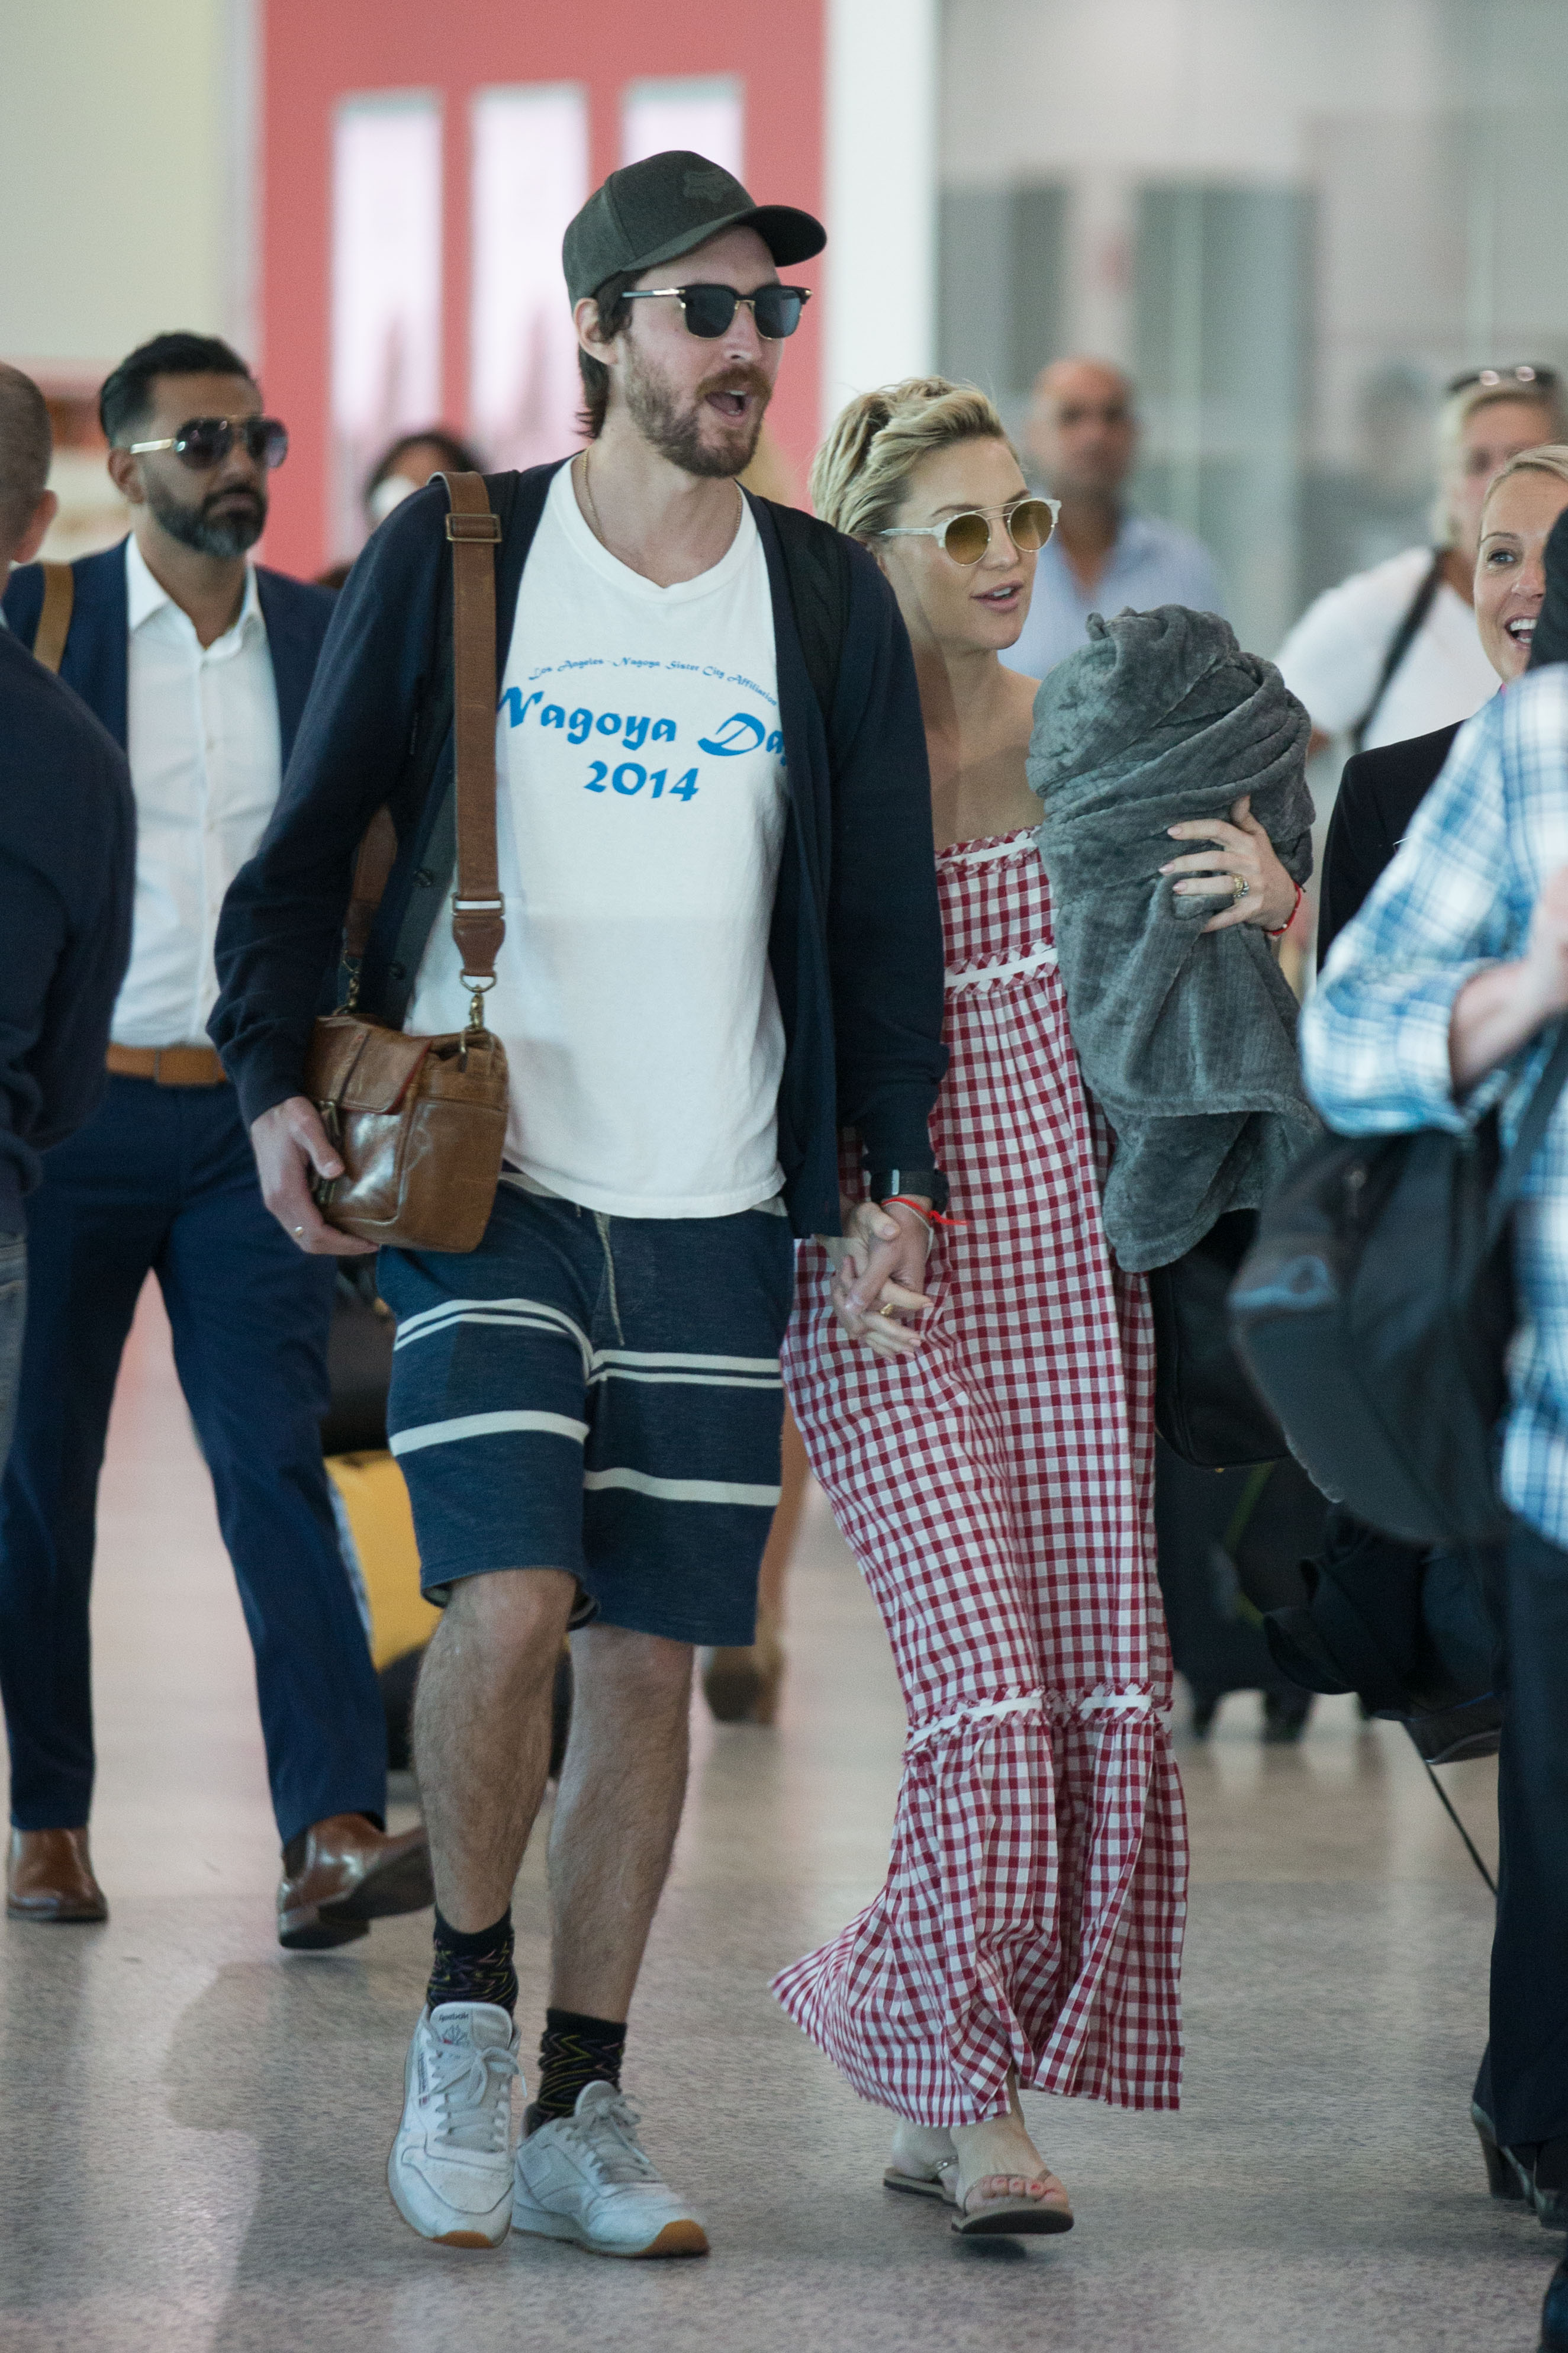 EXCLUSIVE: Kate Hudson & Boyfriend Danny Fujikawa are seen arriving into Melbourne airport. Kate Hudson and her boyfriend Danny Fujikawa were seen walking hand in hand as they arrived into Melbourne airport as Kate continues her business chicks tour of Australia. Kate was seen wearing a ring on her wedding finger sparking rumours that the two are now engaged.  <P> Pictured: Kate Hudson and Danny Fujikawa <B>Ref: SPL1661250  200218   EXCLUSIVE</B><BR/> Picture by: Splash News<BR/> </P><P> <B>Splash News and Pictures</B><BR/> Los Angeles:310-821-2666<BR/> New York:212-619-2666<BR/> London:870-934-2666<BR/> <span id=